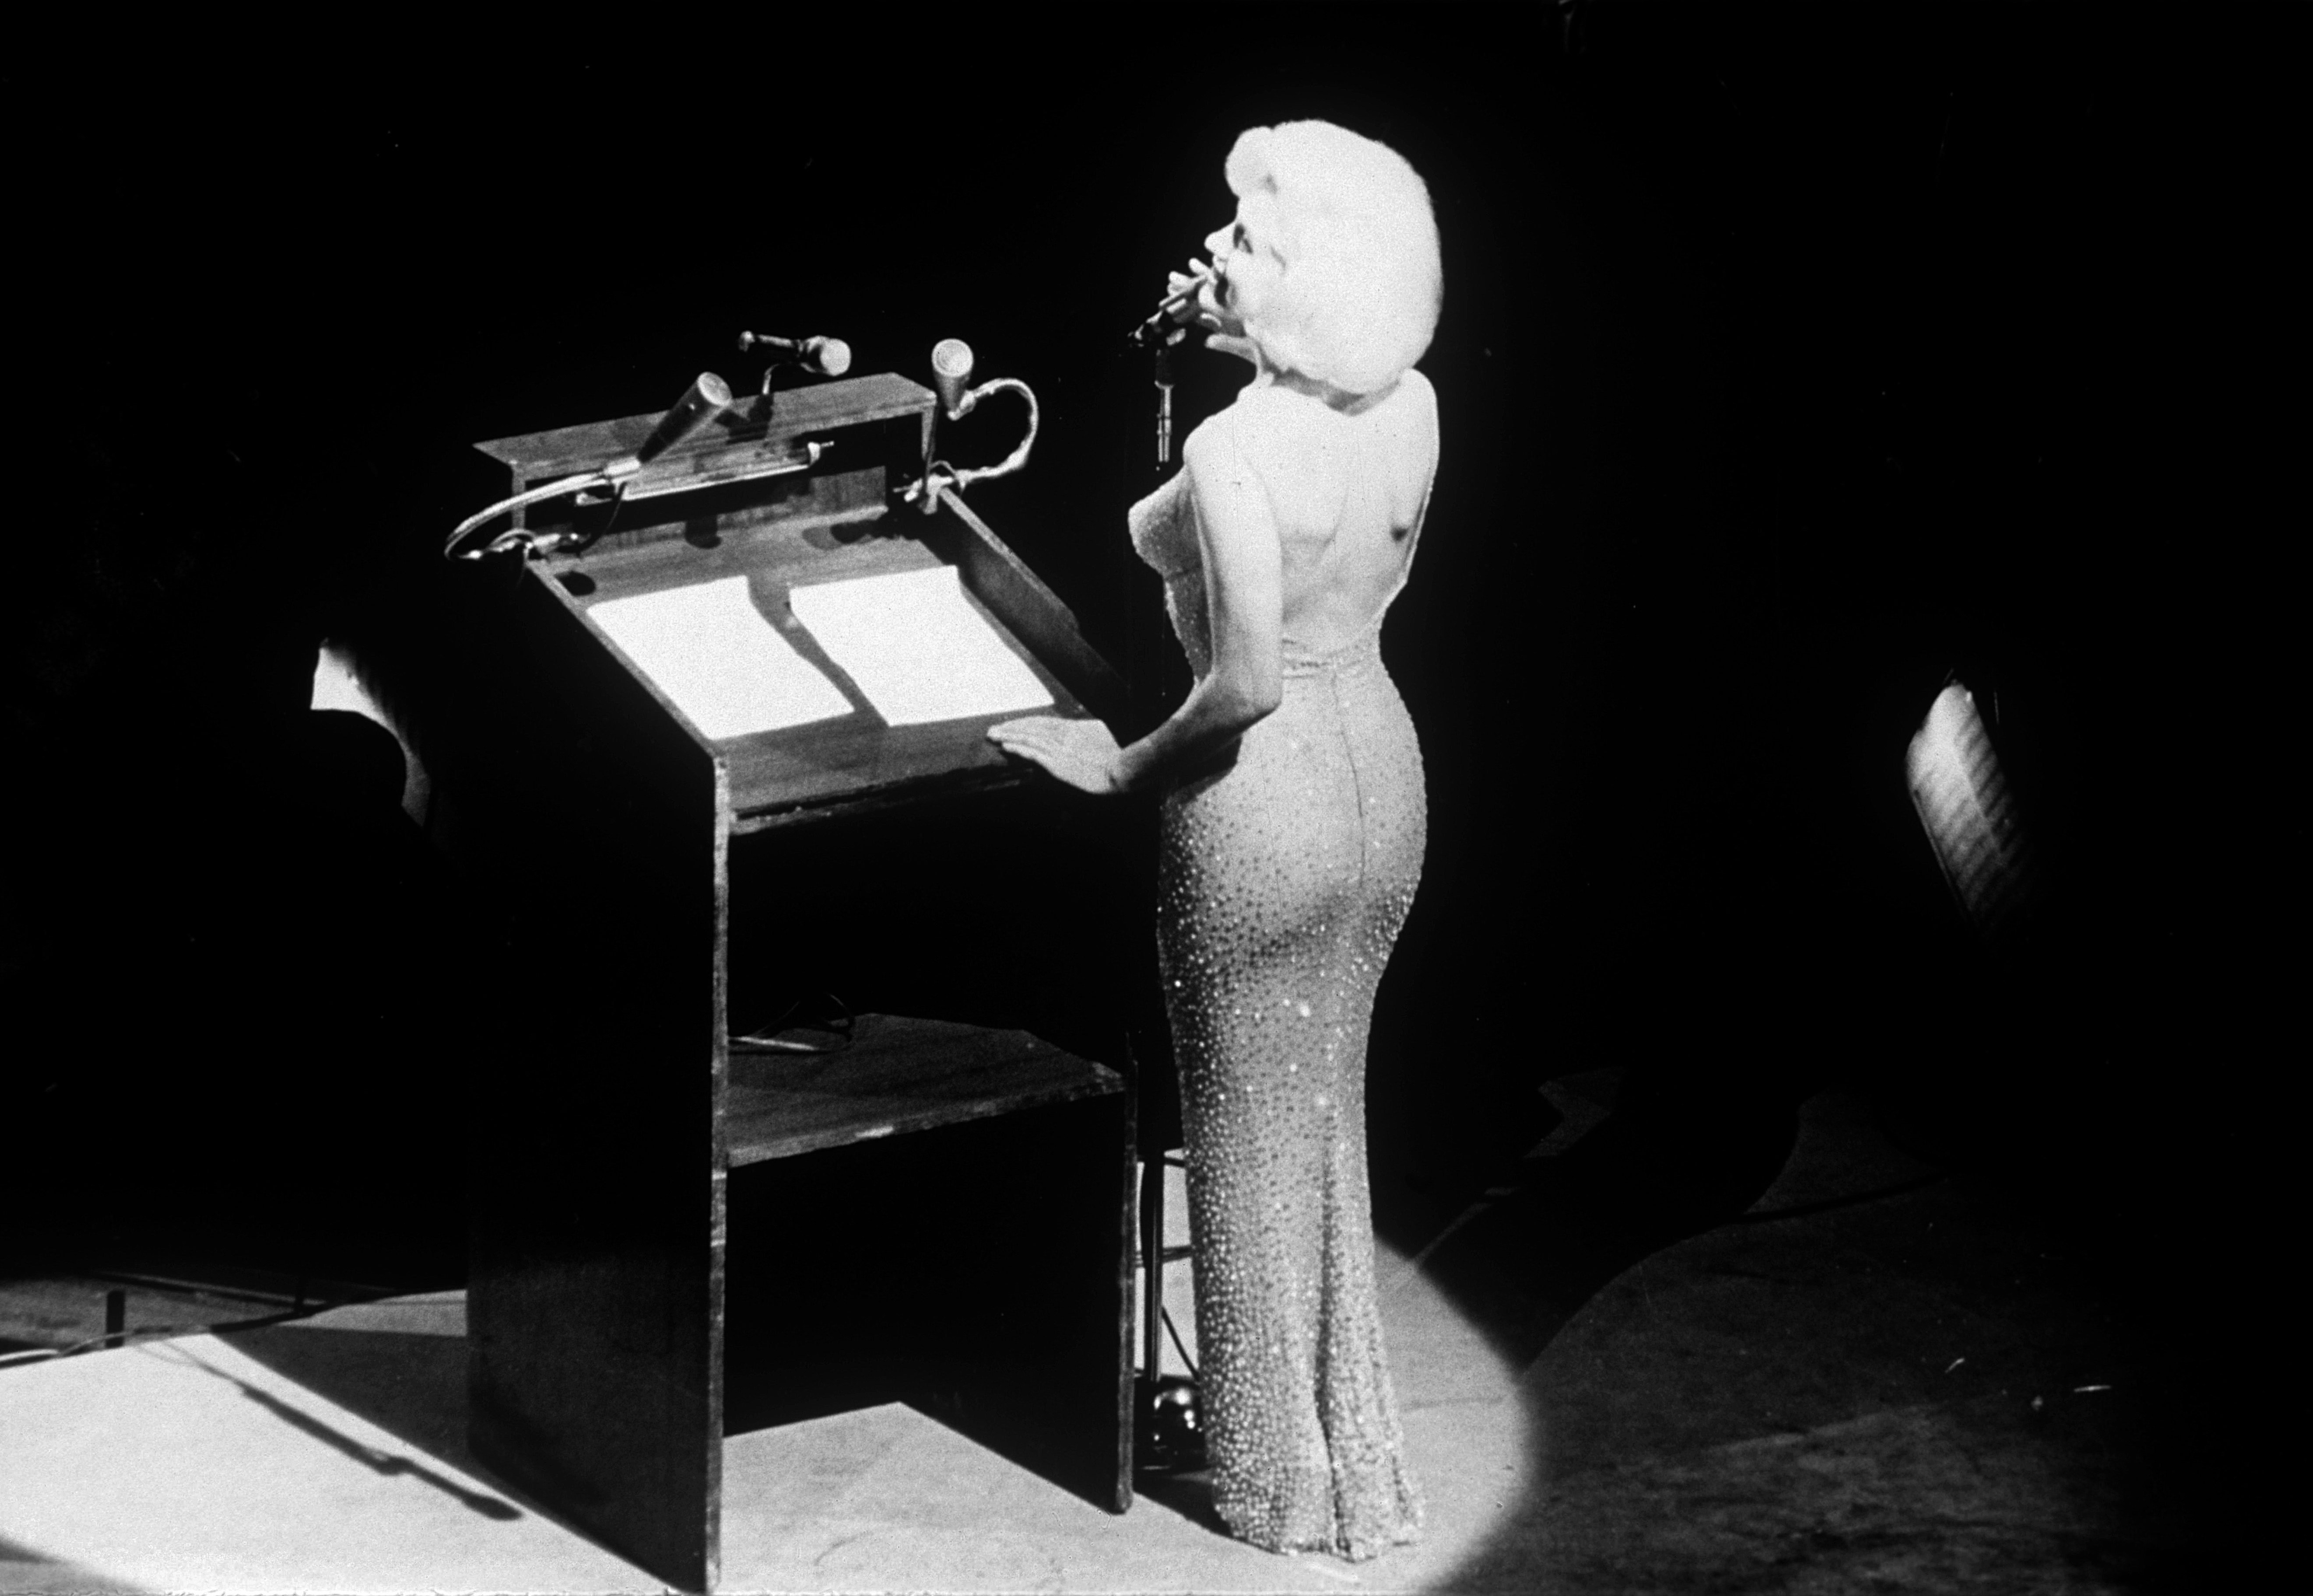 Mandatory Credit: Photo by Snap/Shutterstock (310267y) Marilyn Monroe singing 'Happy Birthday, Mr. President' to John F. Kennedy May 19, 1962 at a celebration of his forty-fifth birthday, ten days before the actual date MARILYN MONROE RETROSPECTIVE